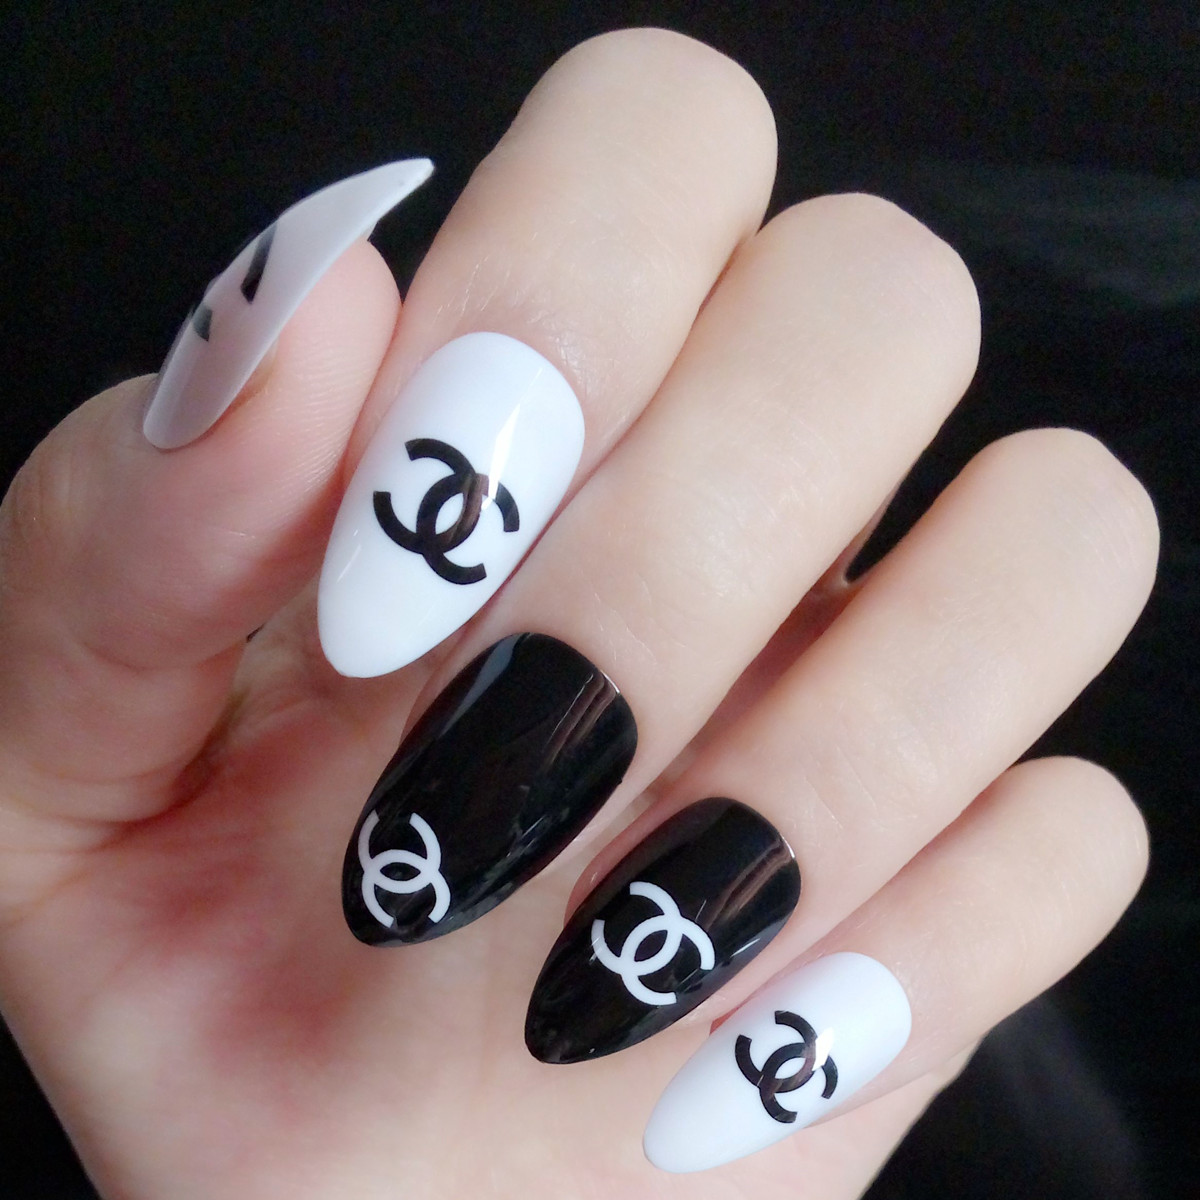 Aliexpress.com : Buy Fashion Fake Nail Classic Black White